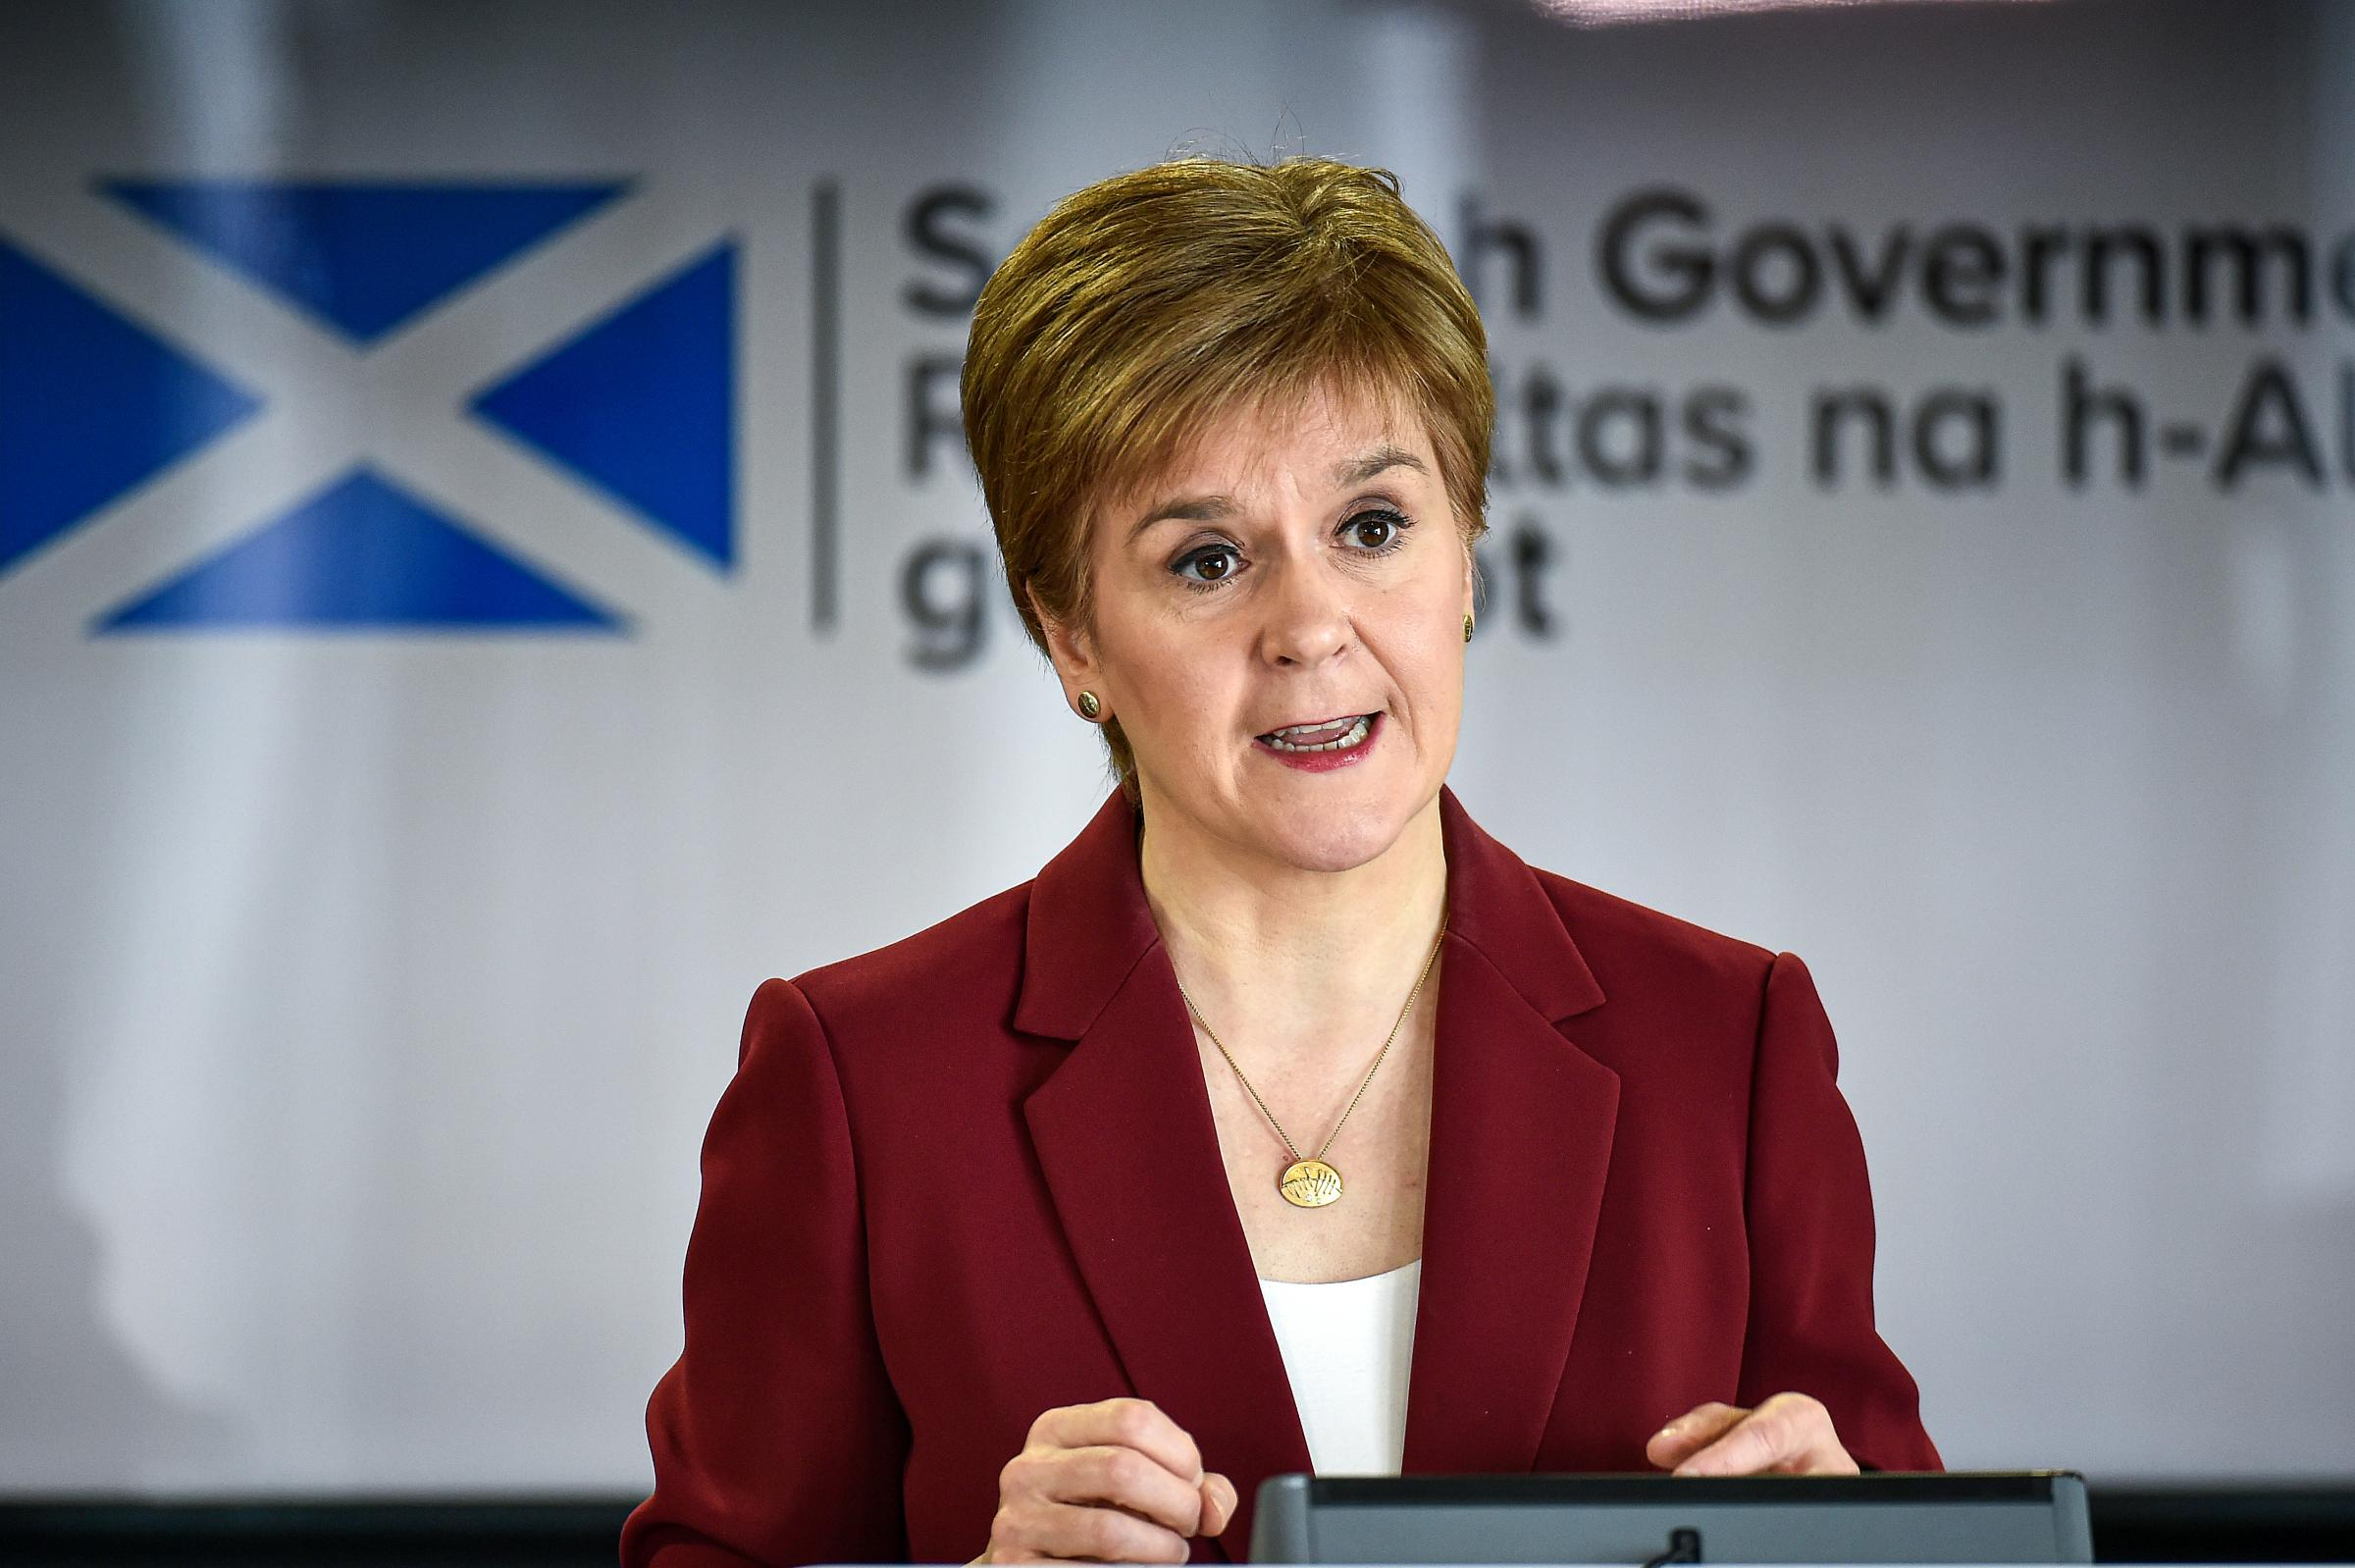 Coronavirus: Nicola Sturgeon warns restrictions likely for 'considerable' time after peak